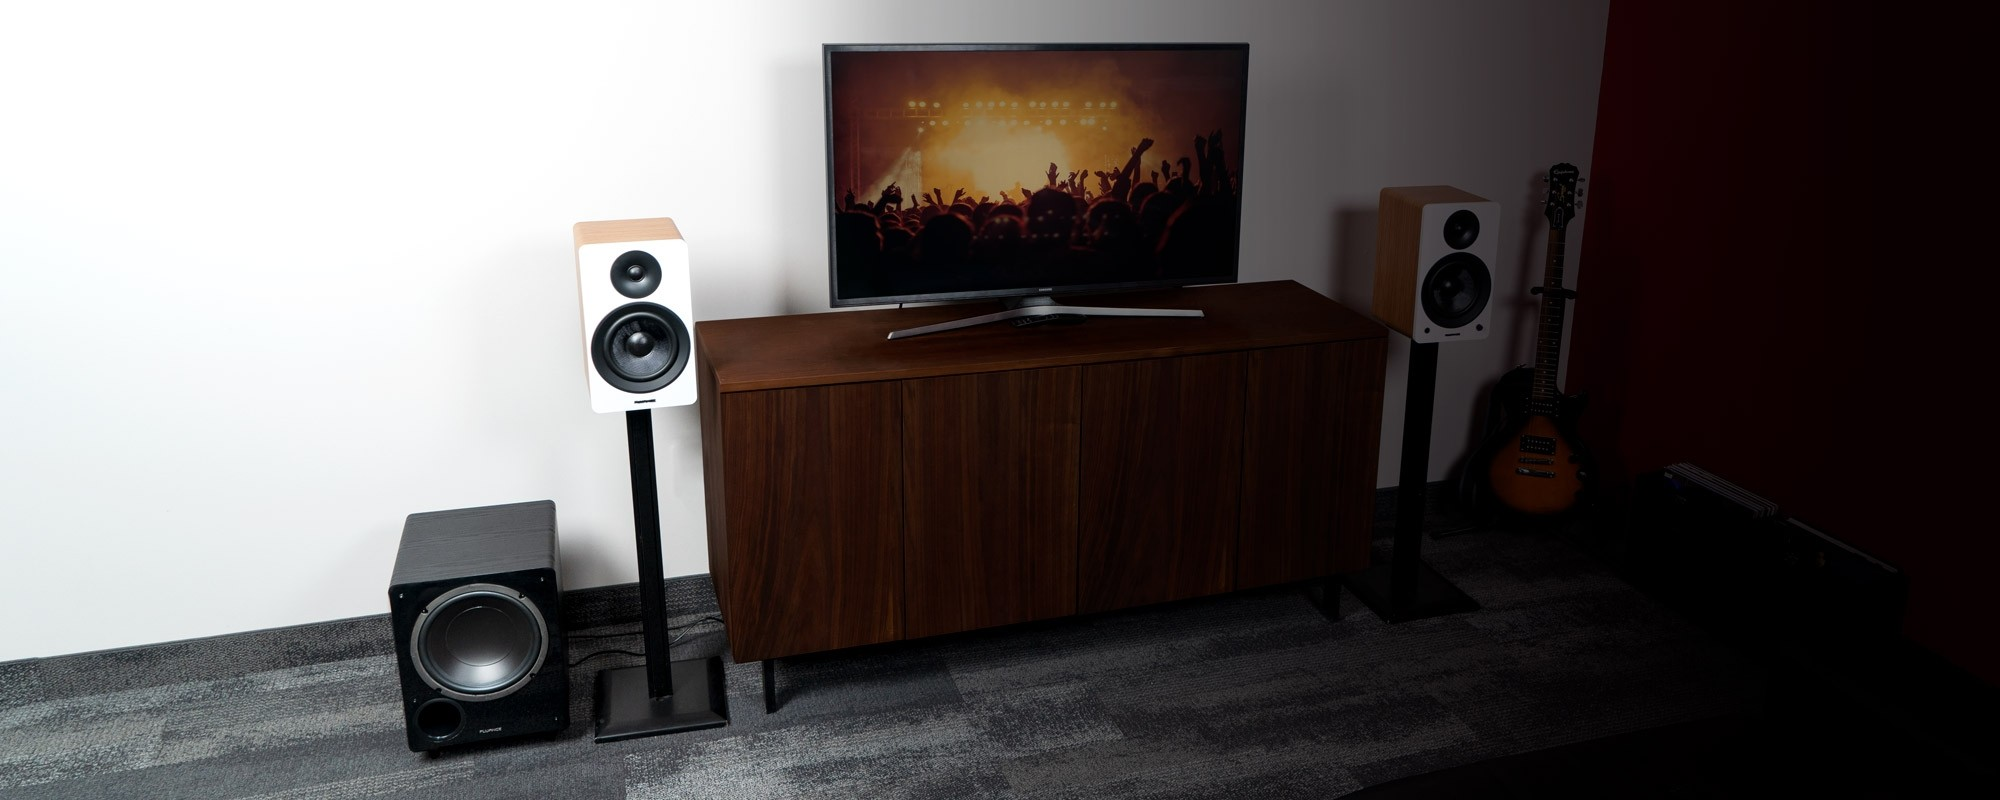 """Ai61 Powered 6.5"""" Stereo Bookshelf Speakers and DB10 10-Inch Low Frequency Ported Front Firing Powered Subwoofer - Lifestyle"""